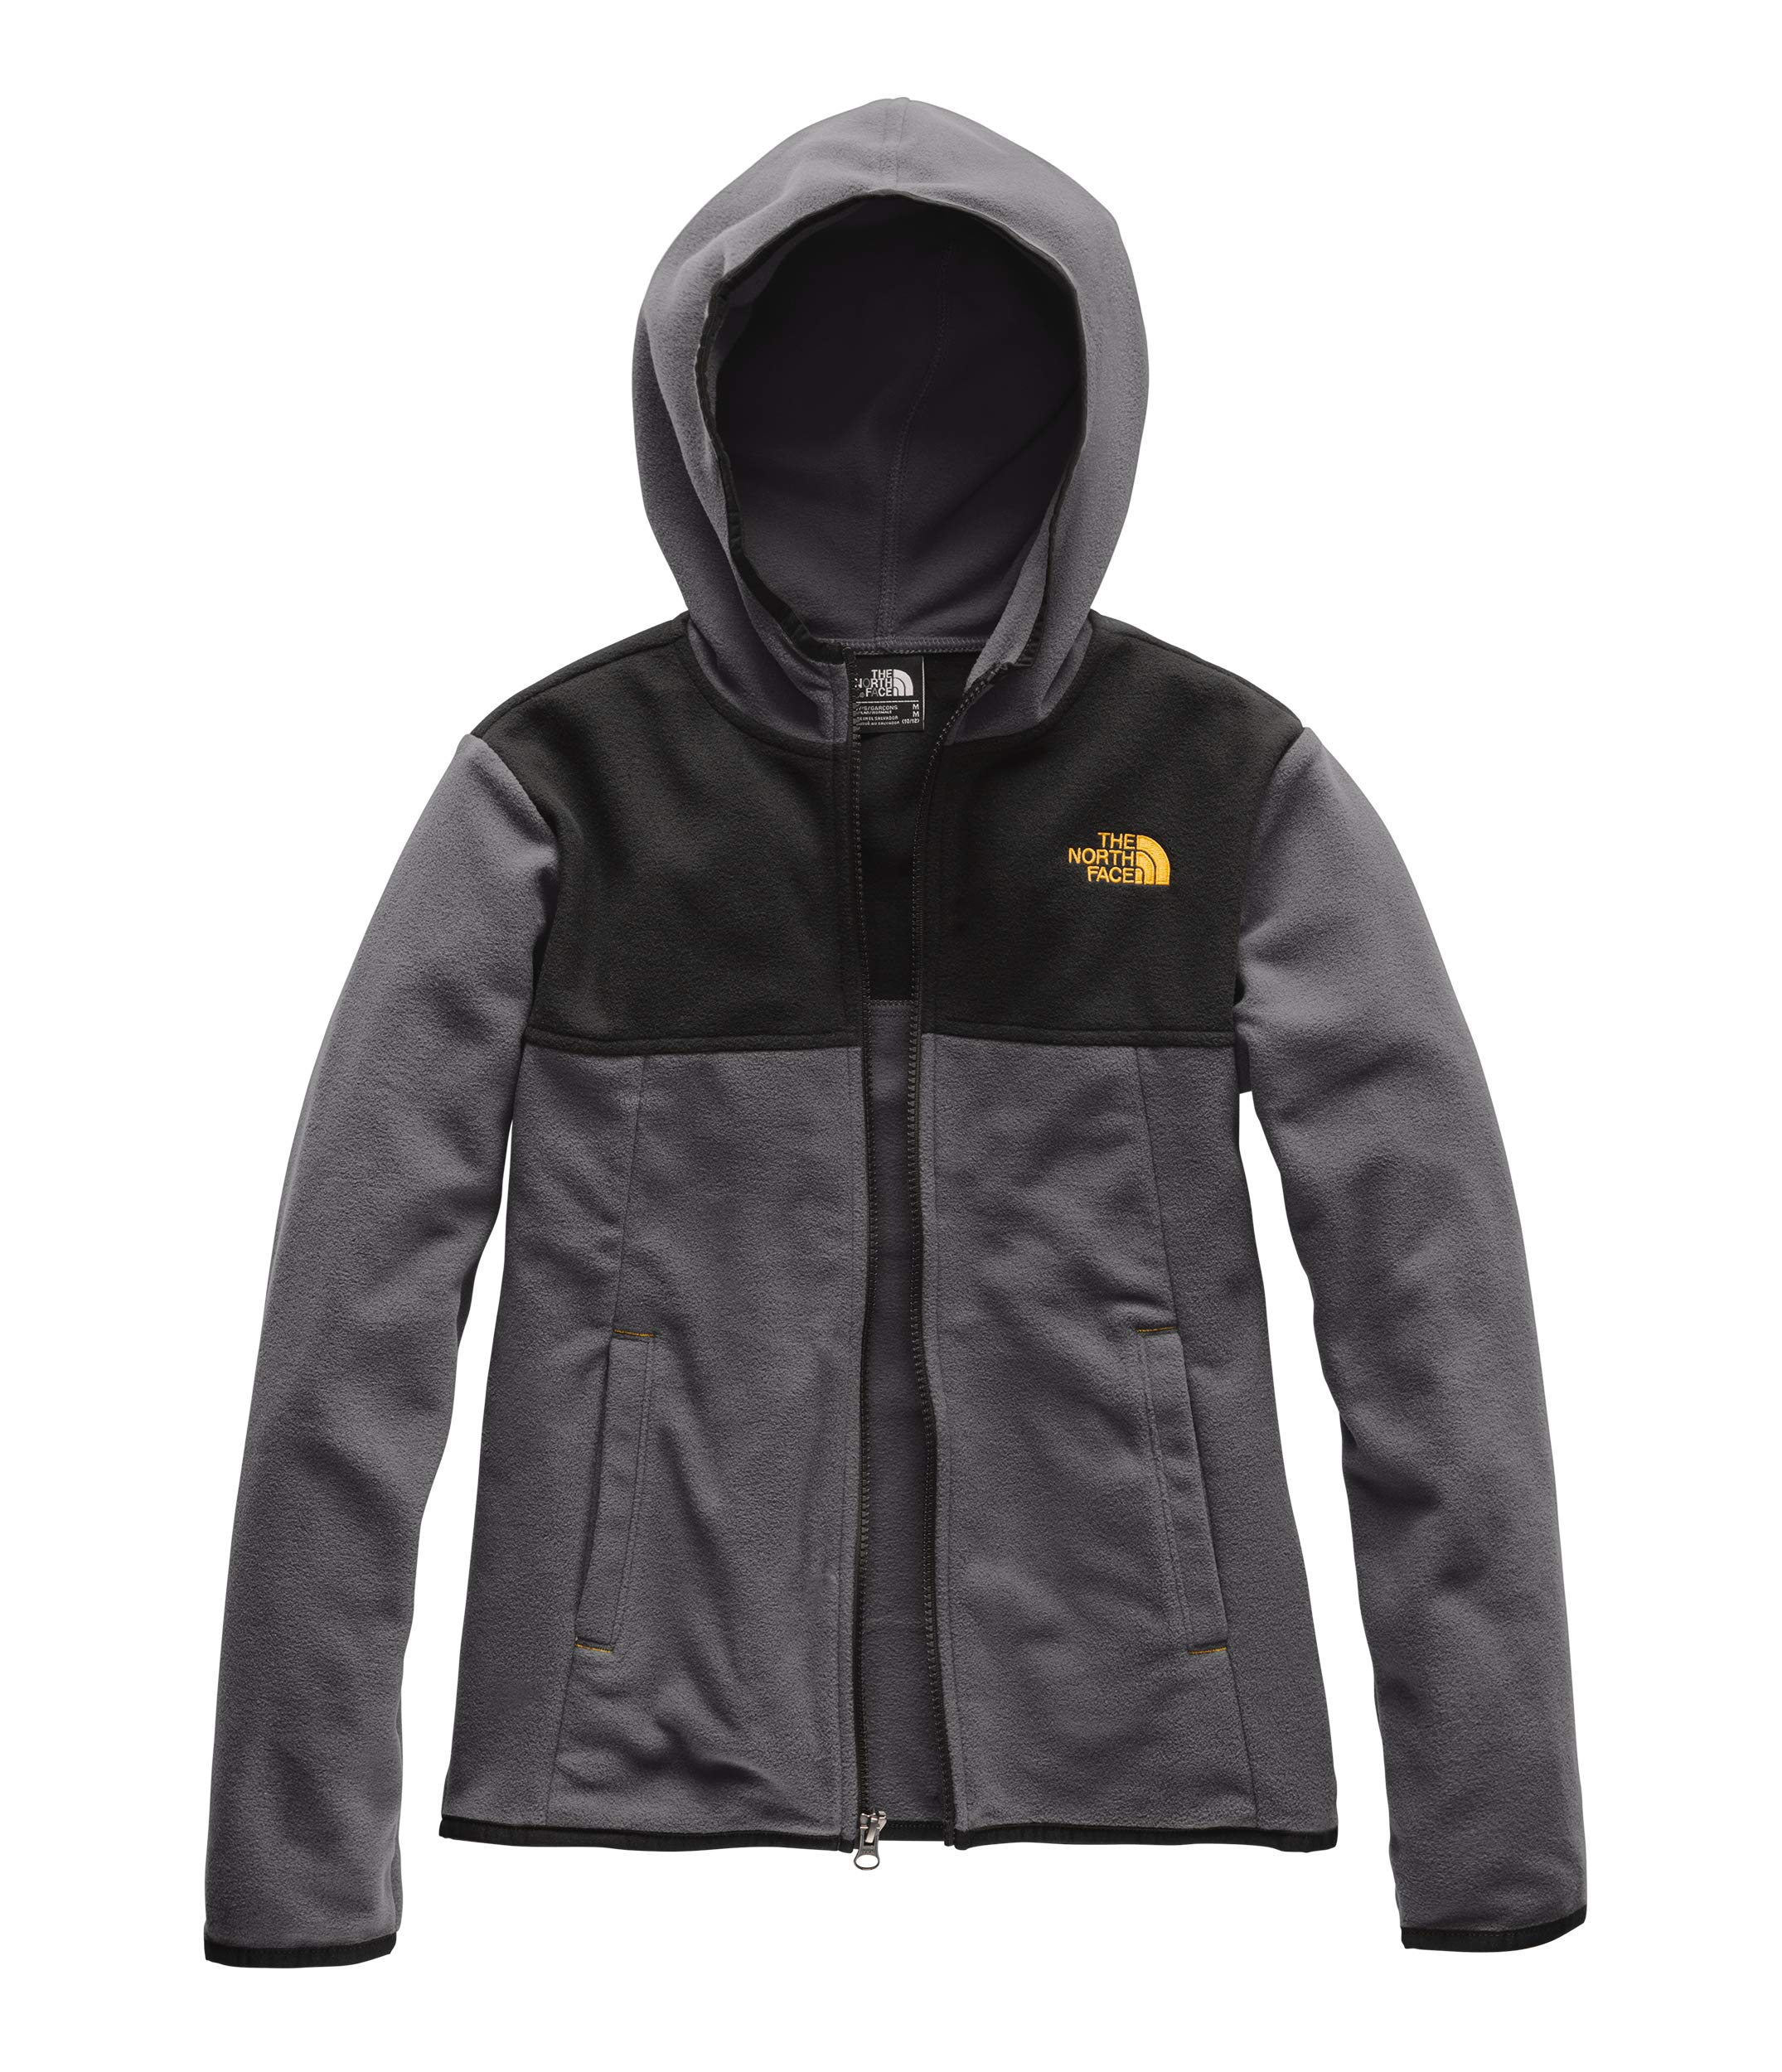 The North Face Boys' Glacier Full Zip Hoodie, Graphite Grey, Small